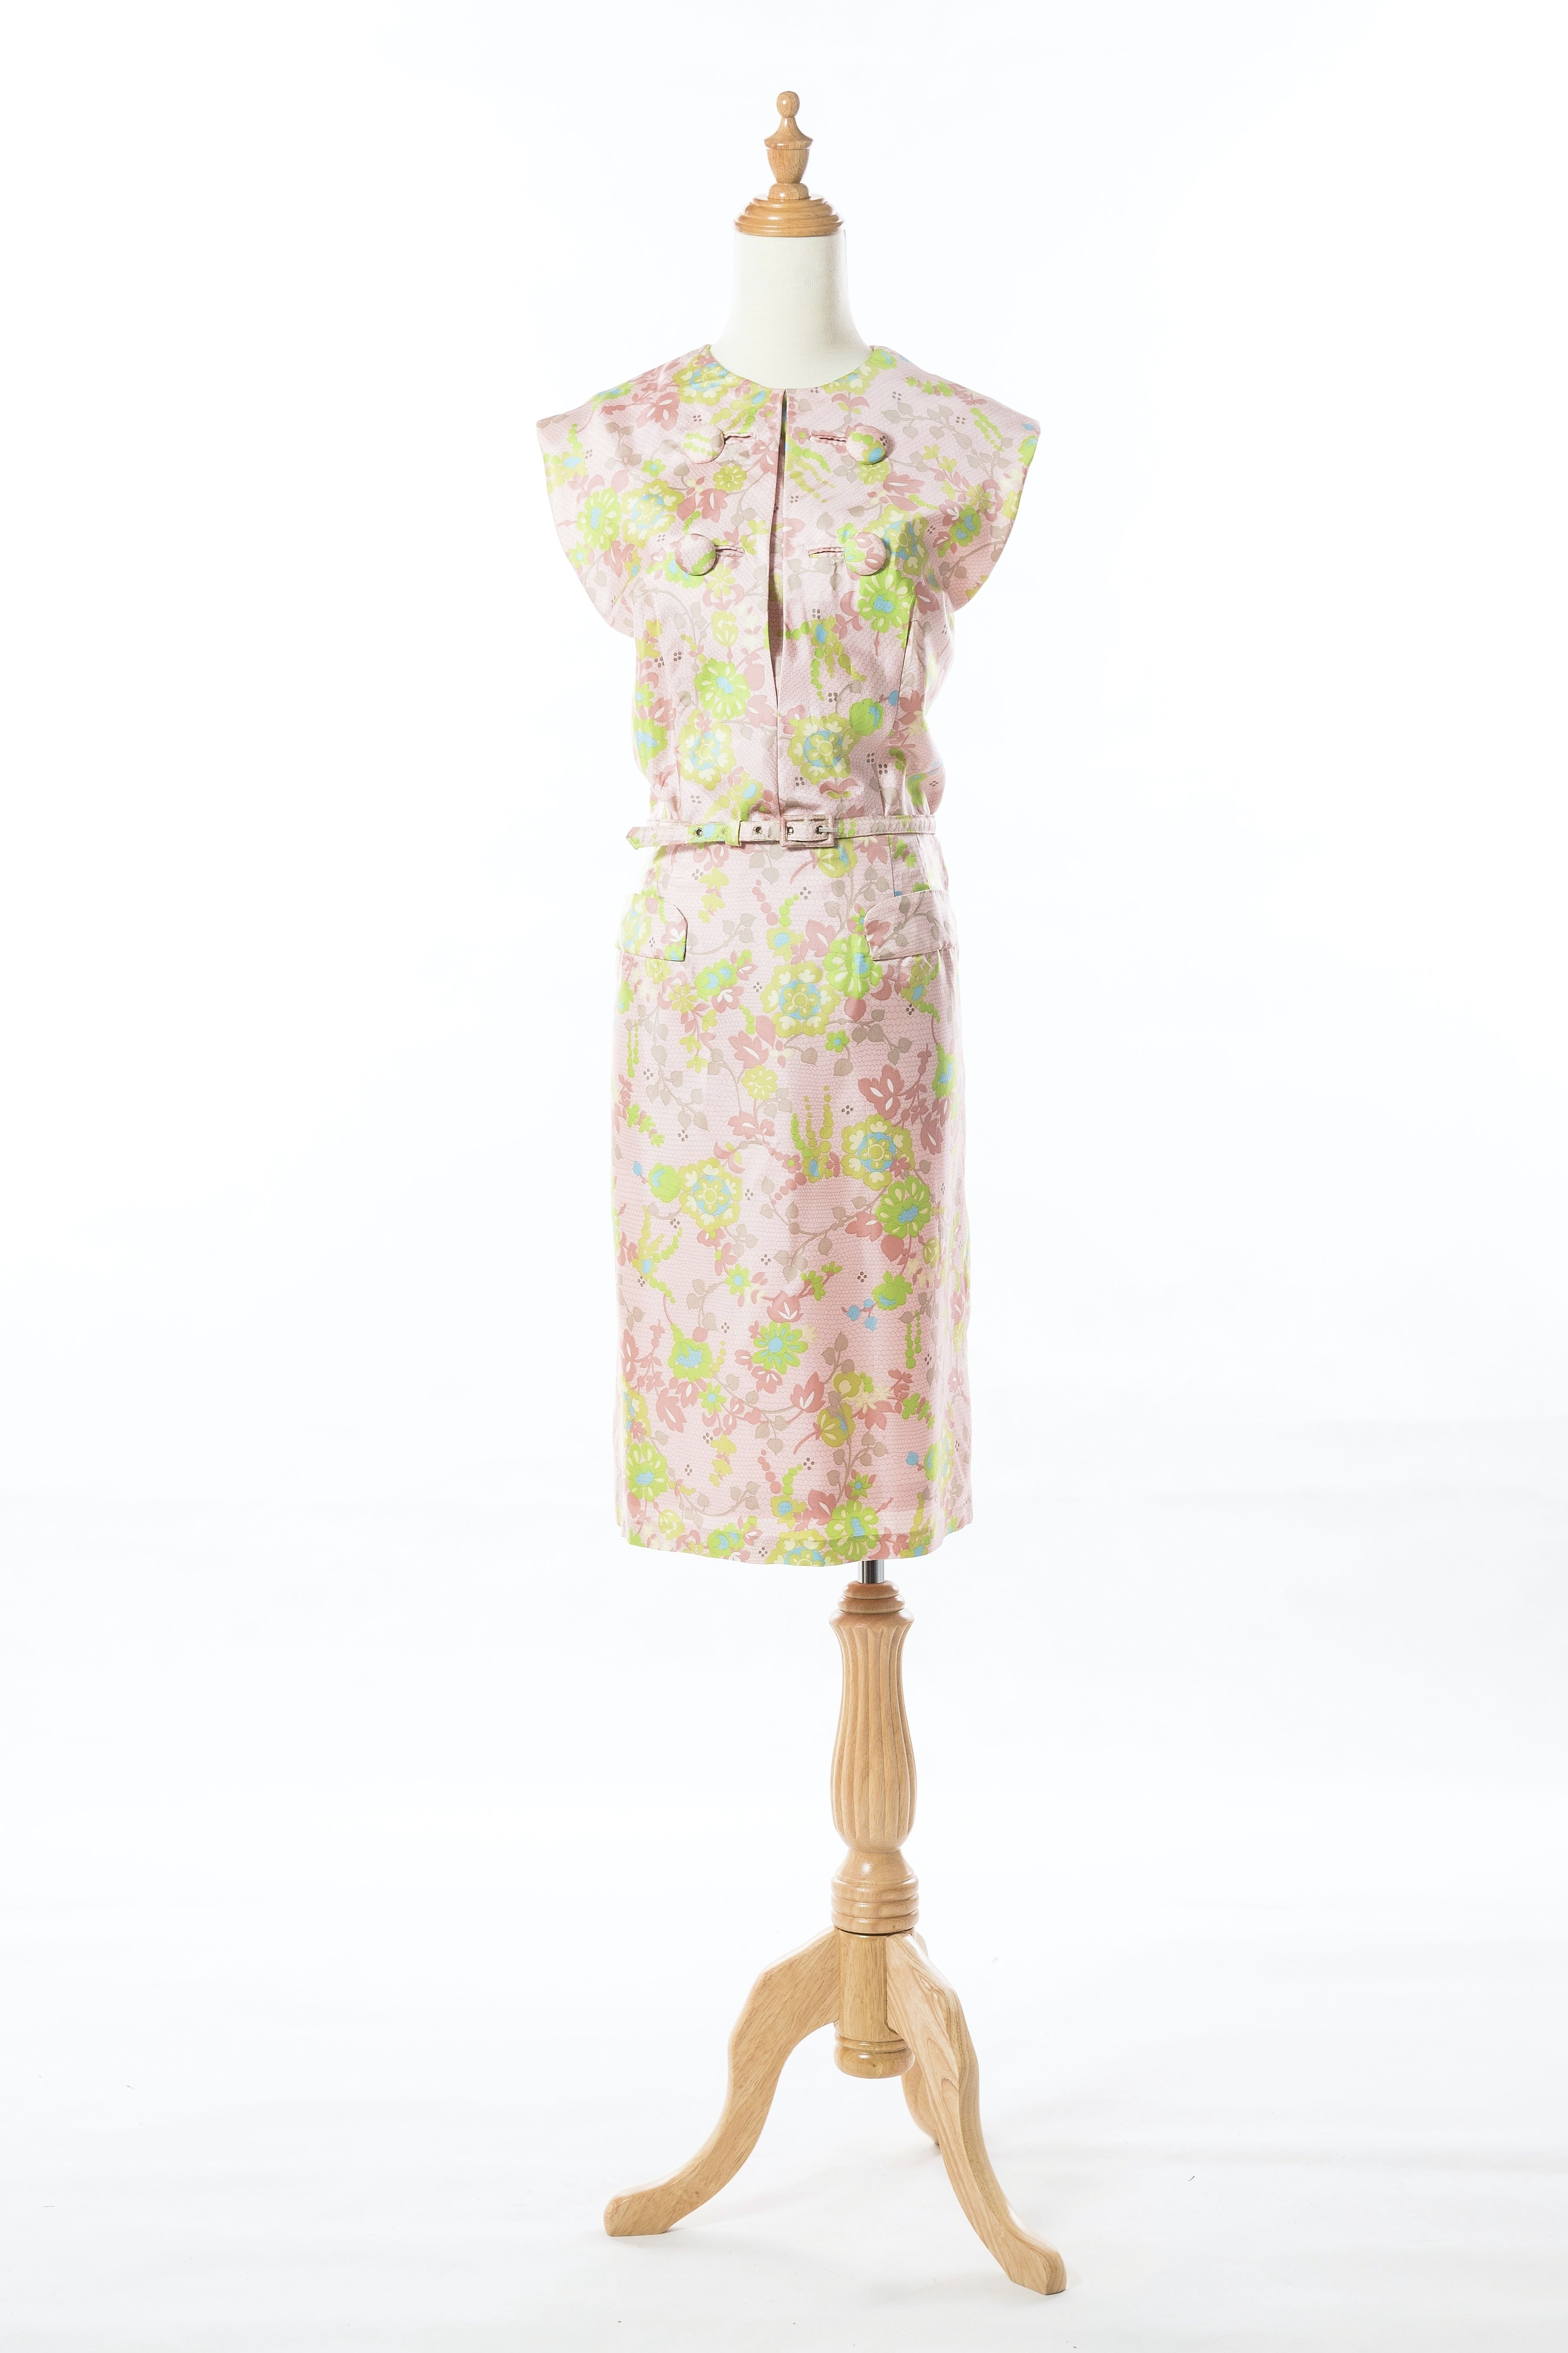 1960s Floral Pastel Pink Asian Inspired Cocktail Dress   Up on ETSY ...